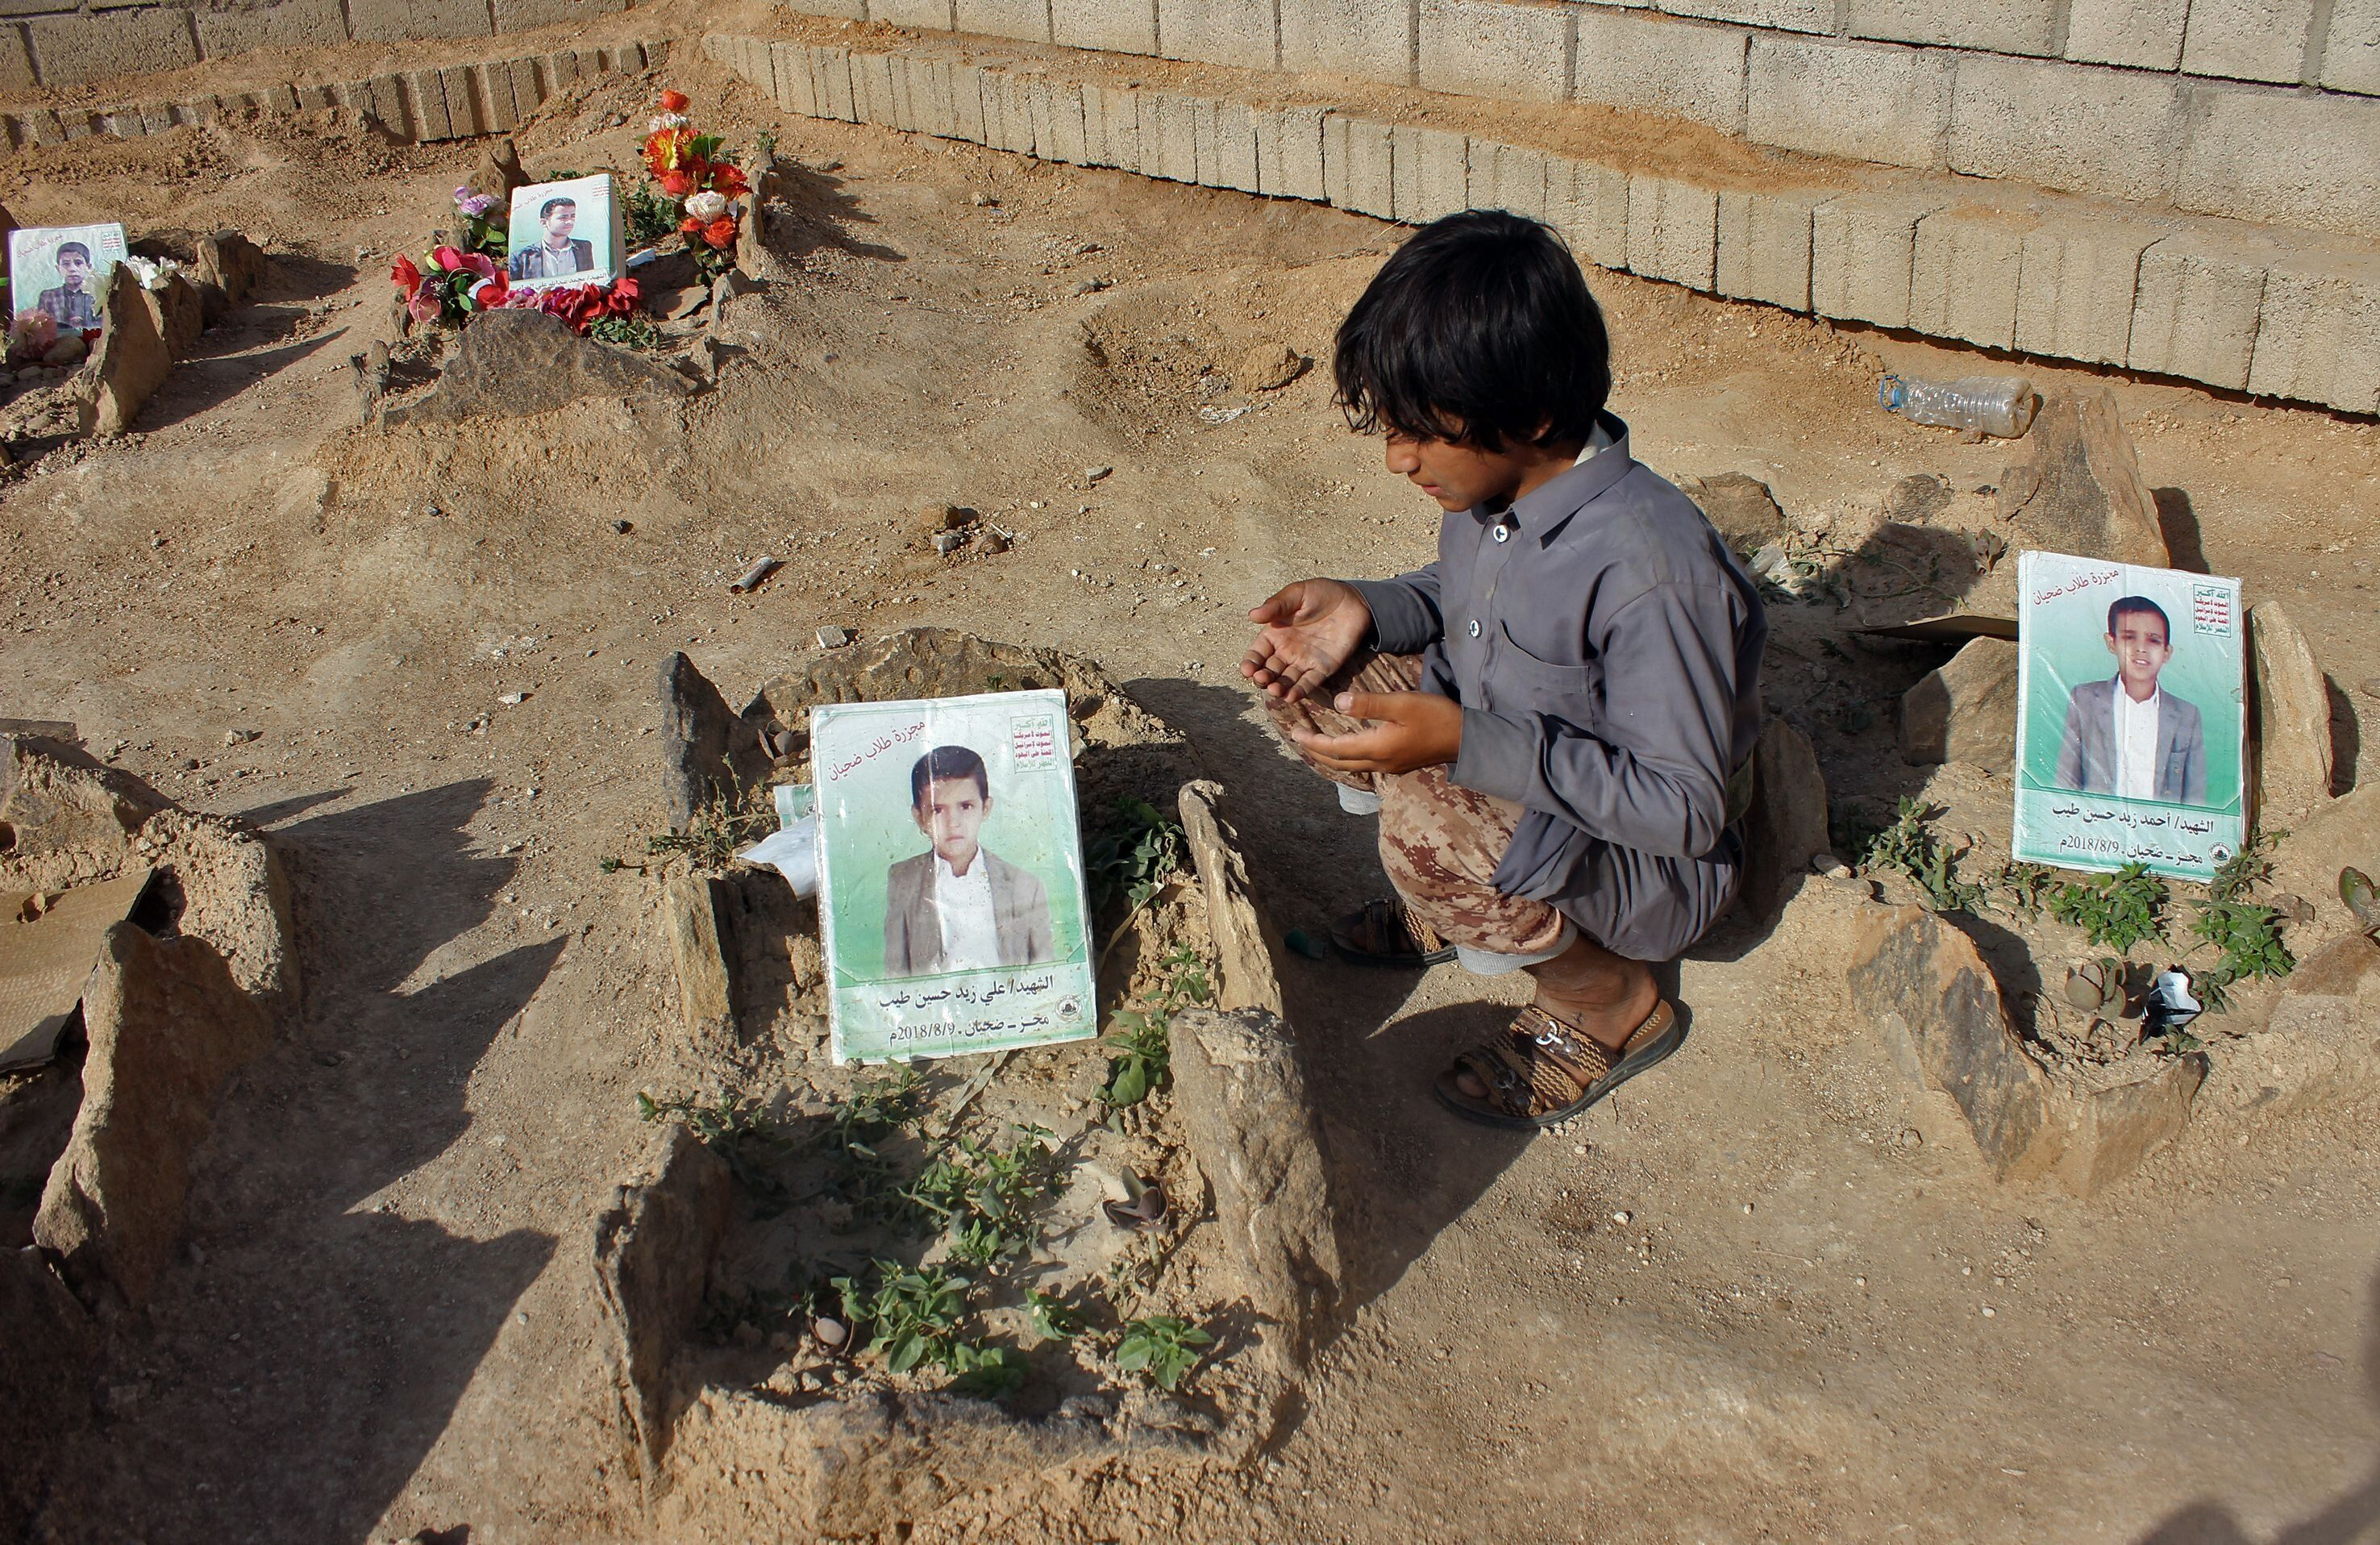 A Yemeni child at the graves of schoolboys who were killed in an August 2018 airstrike by a military coalition that included